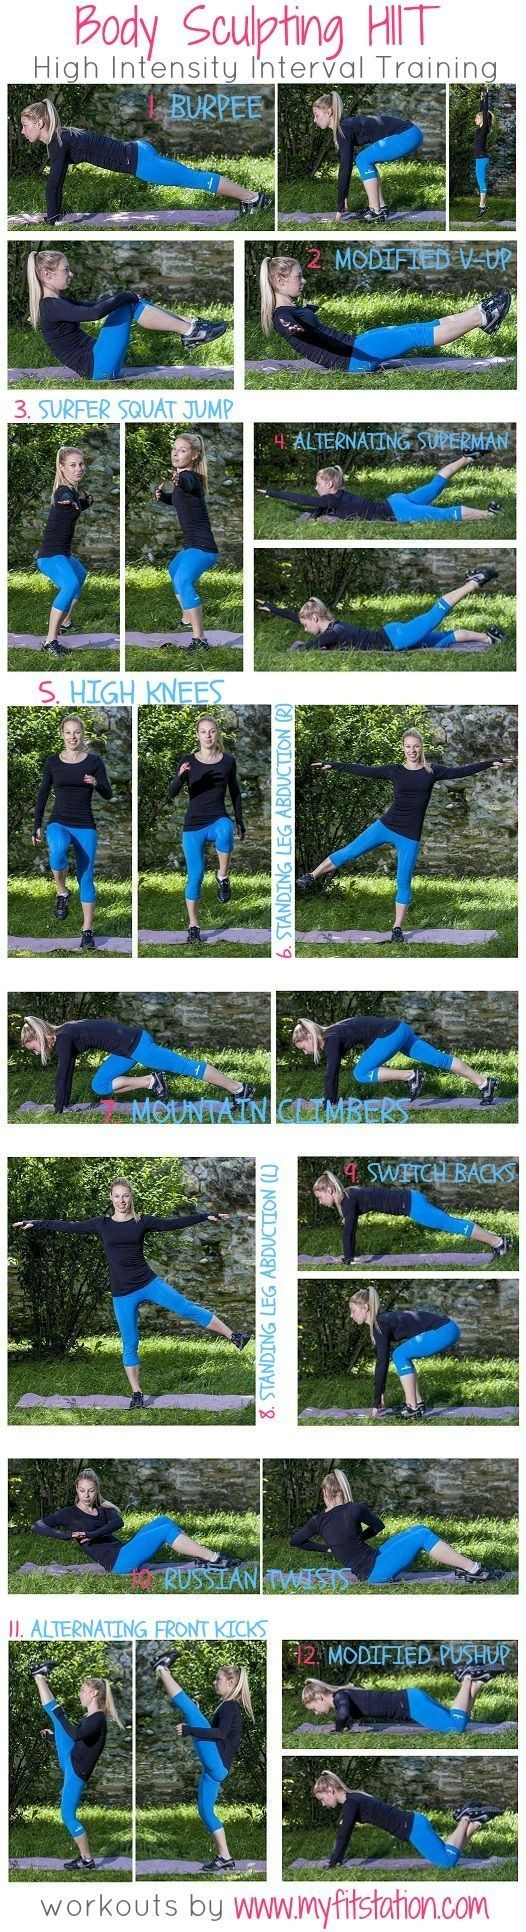 Body Sculpting HIIT #fitness #workout #home #exercise by malinda